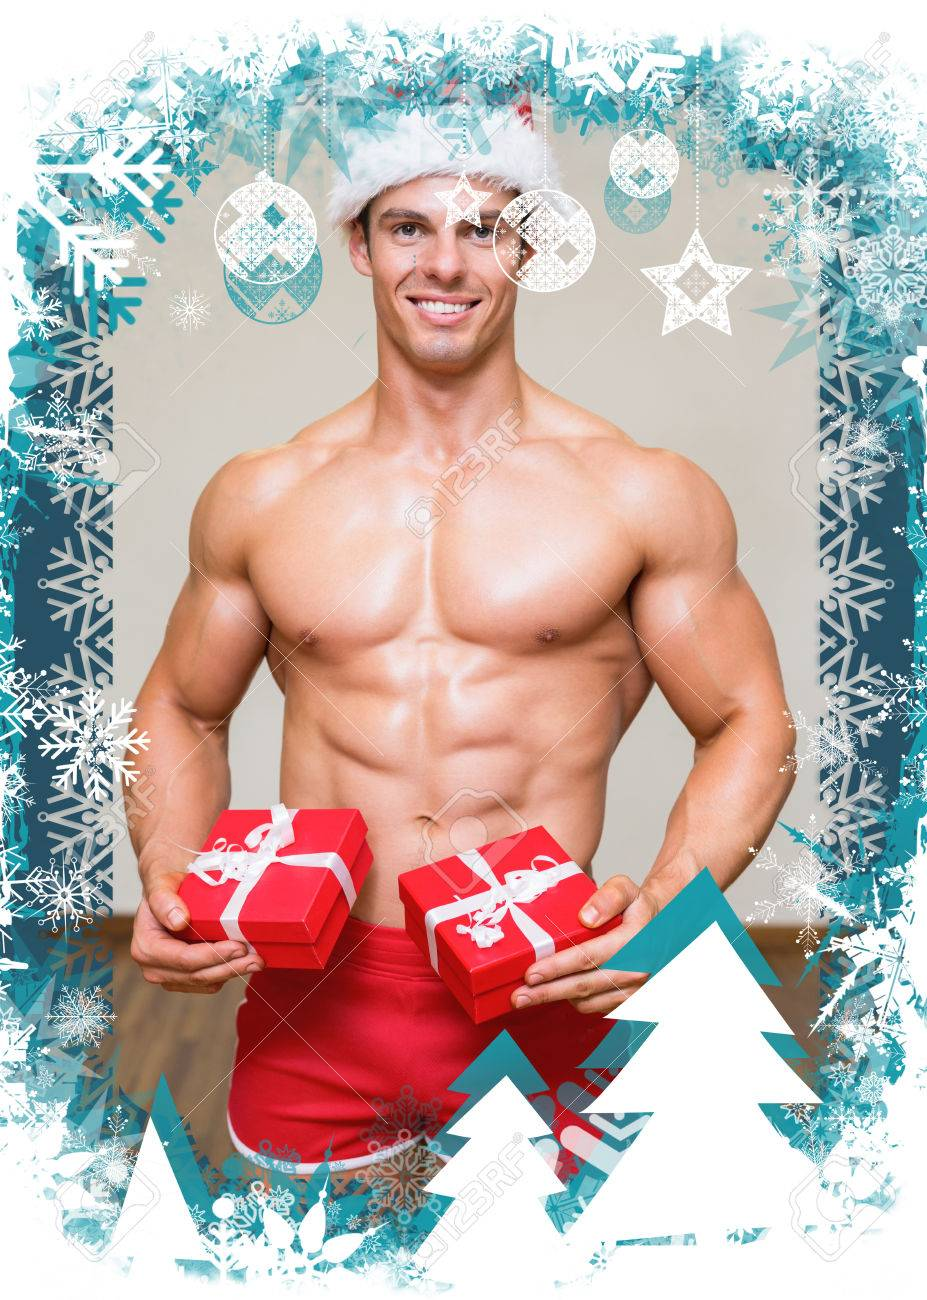 Shirtless Macho Man In Santa Hat Holding Gifts Against Christmas ...